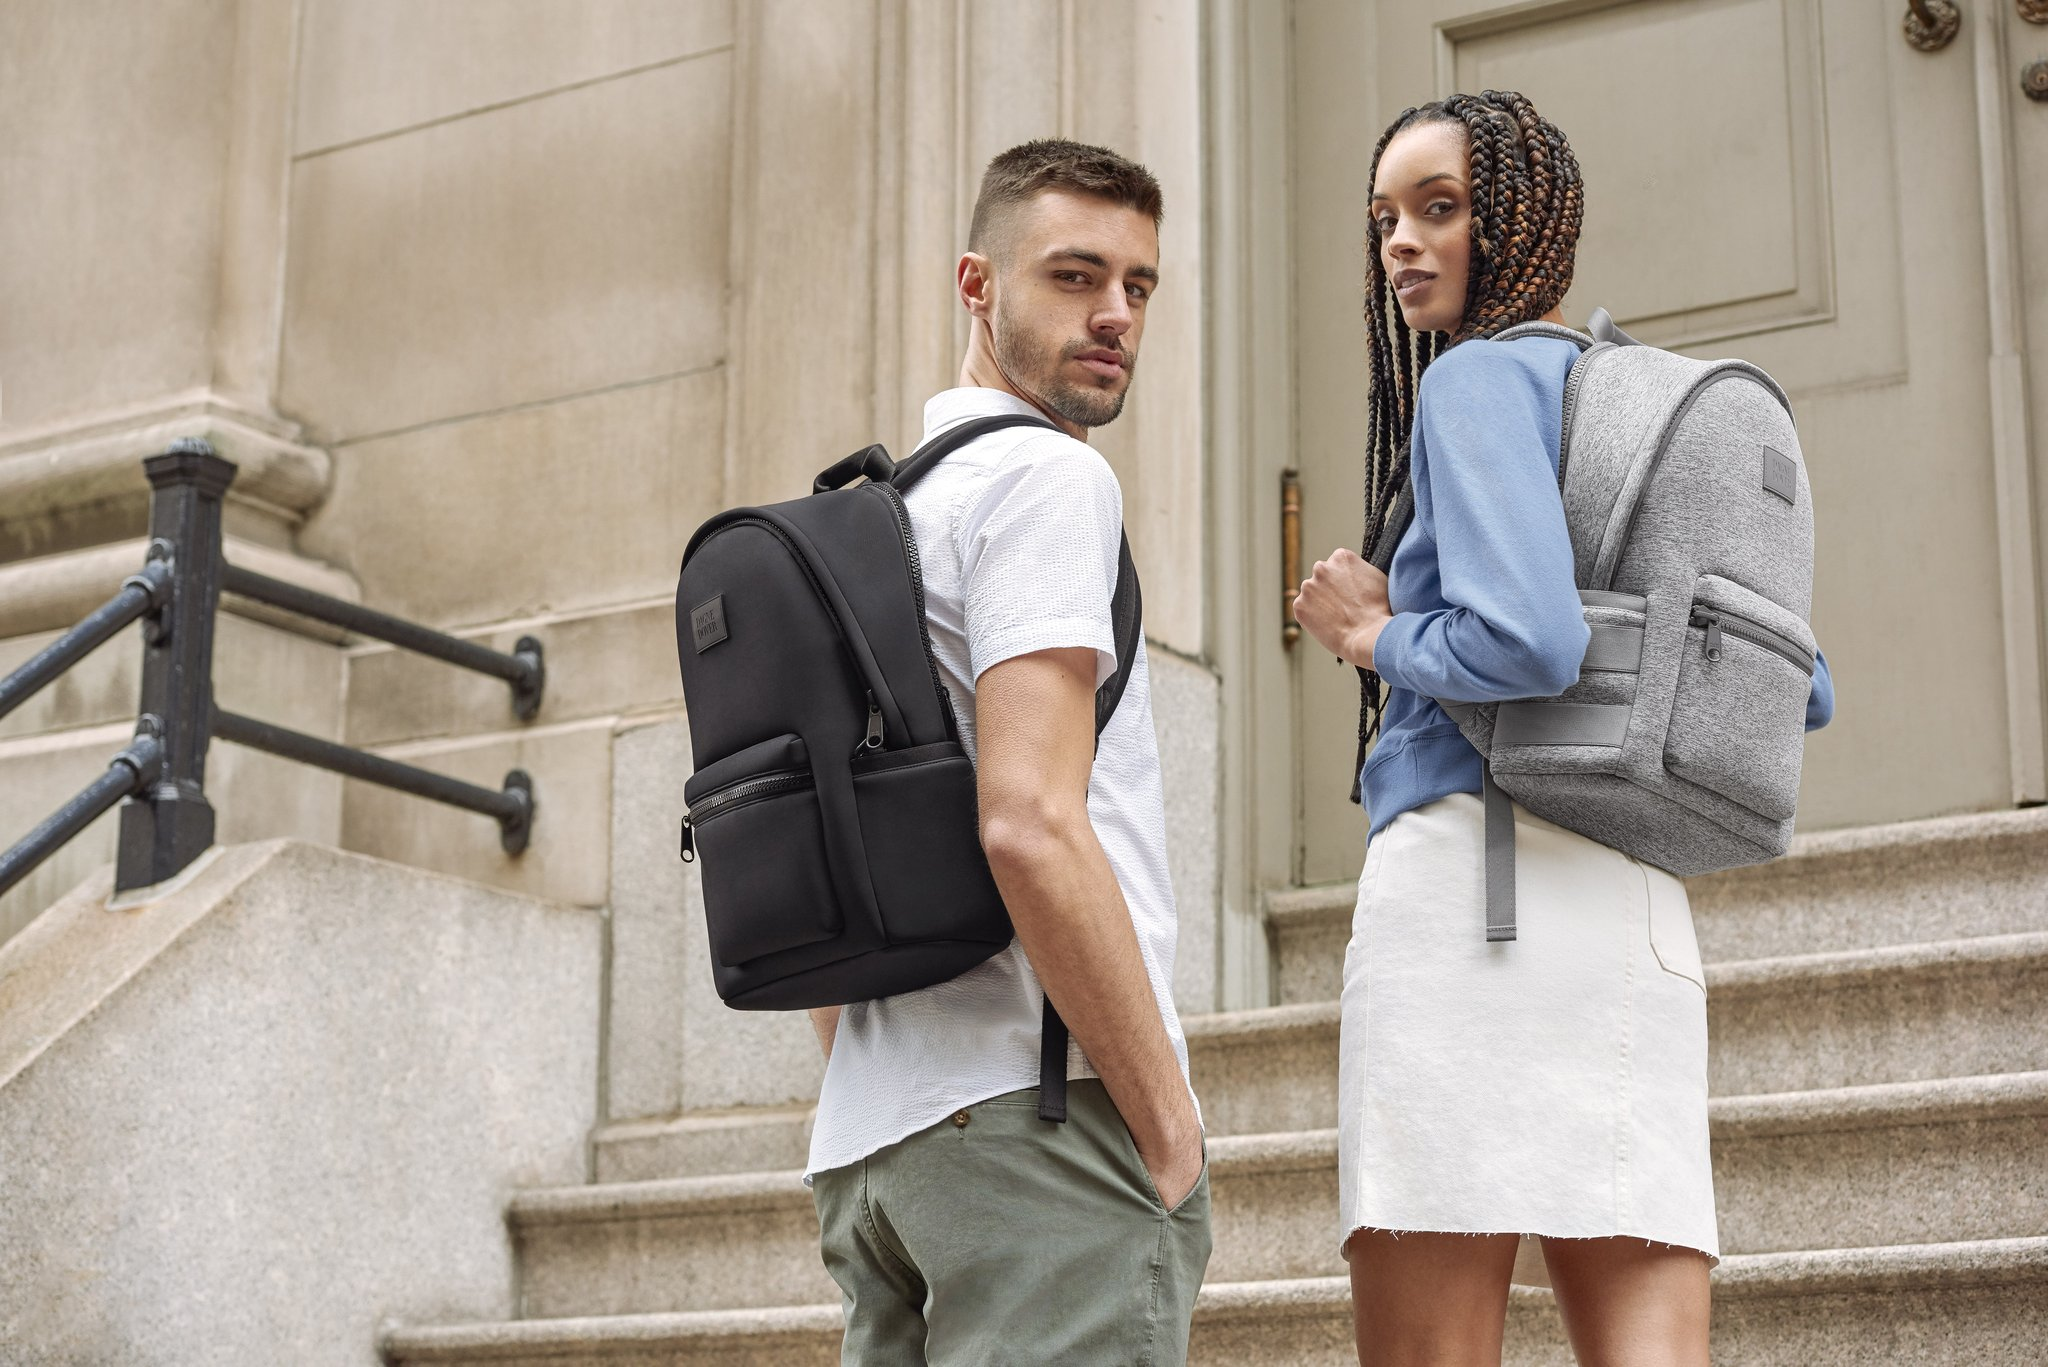 Backpacks an Exceptional Marketing Product